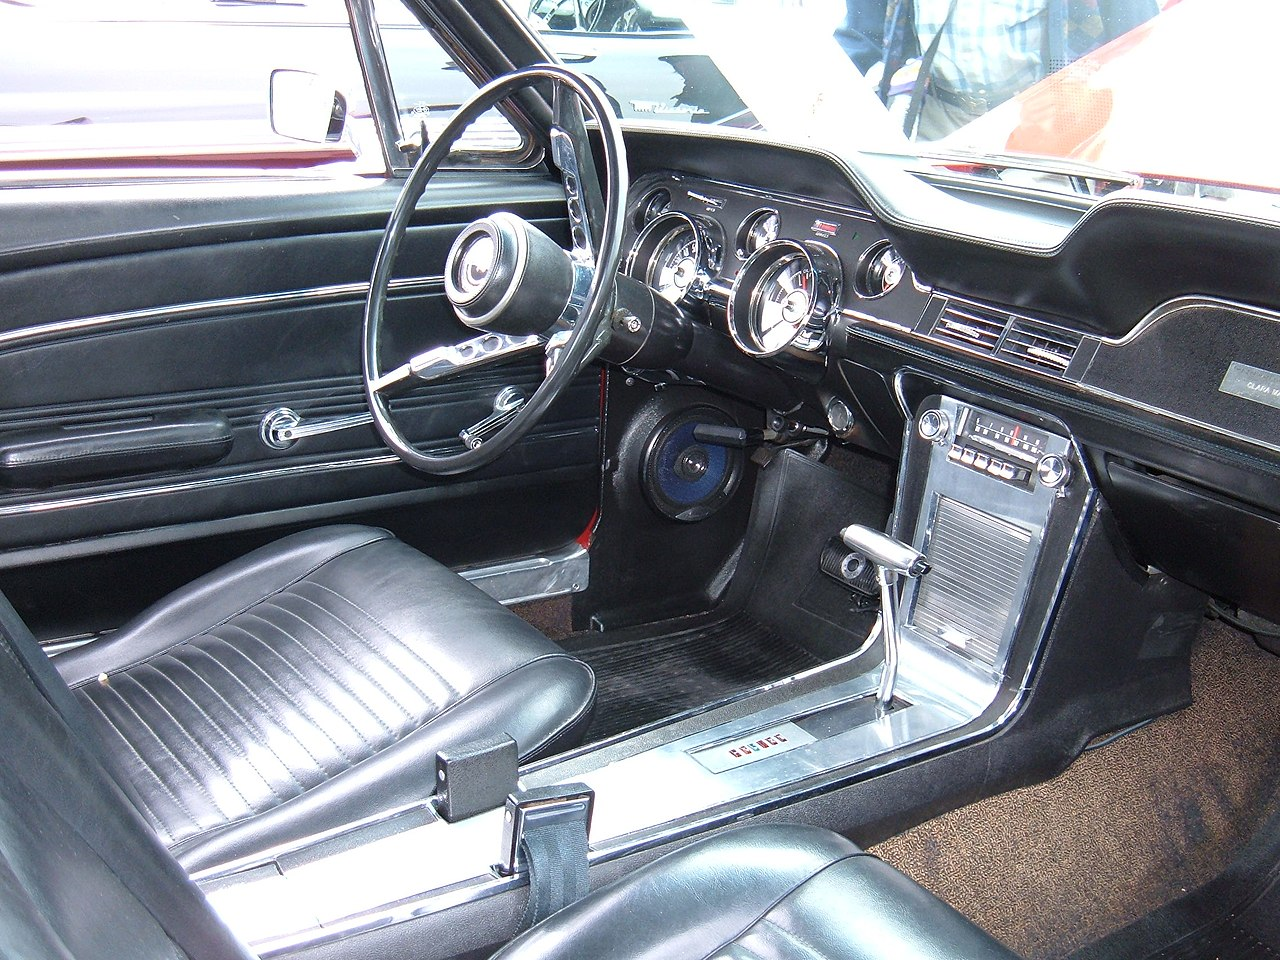 Craigslist Classic Cars For Sale By Owner In West Virginia